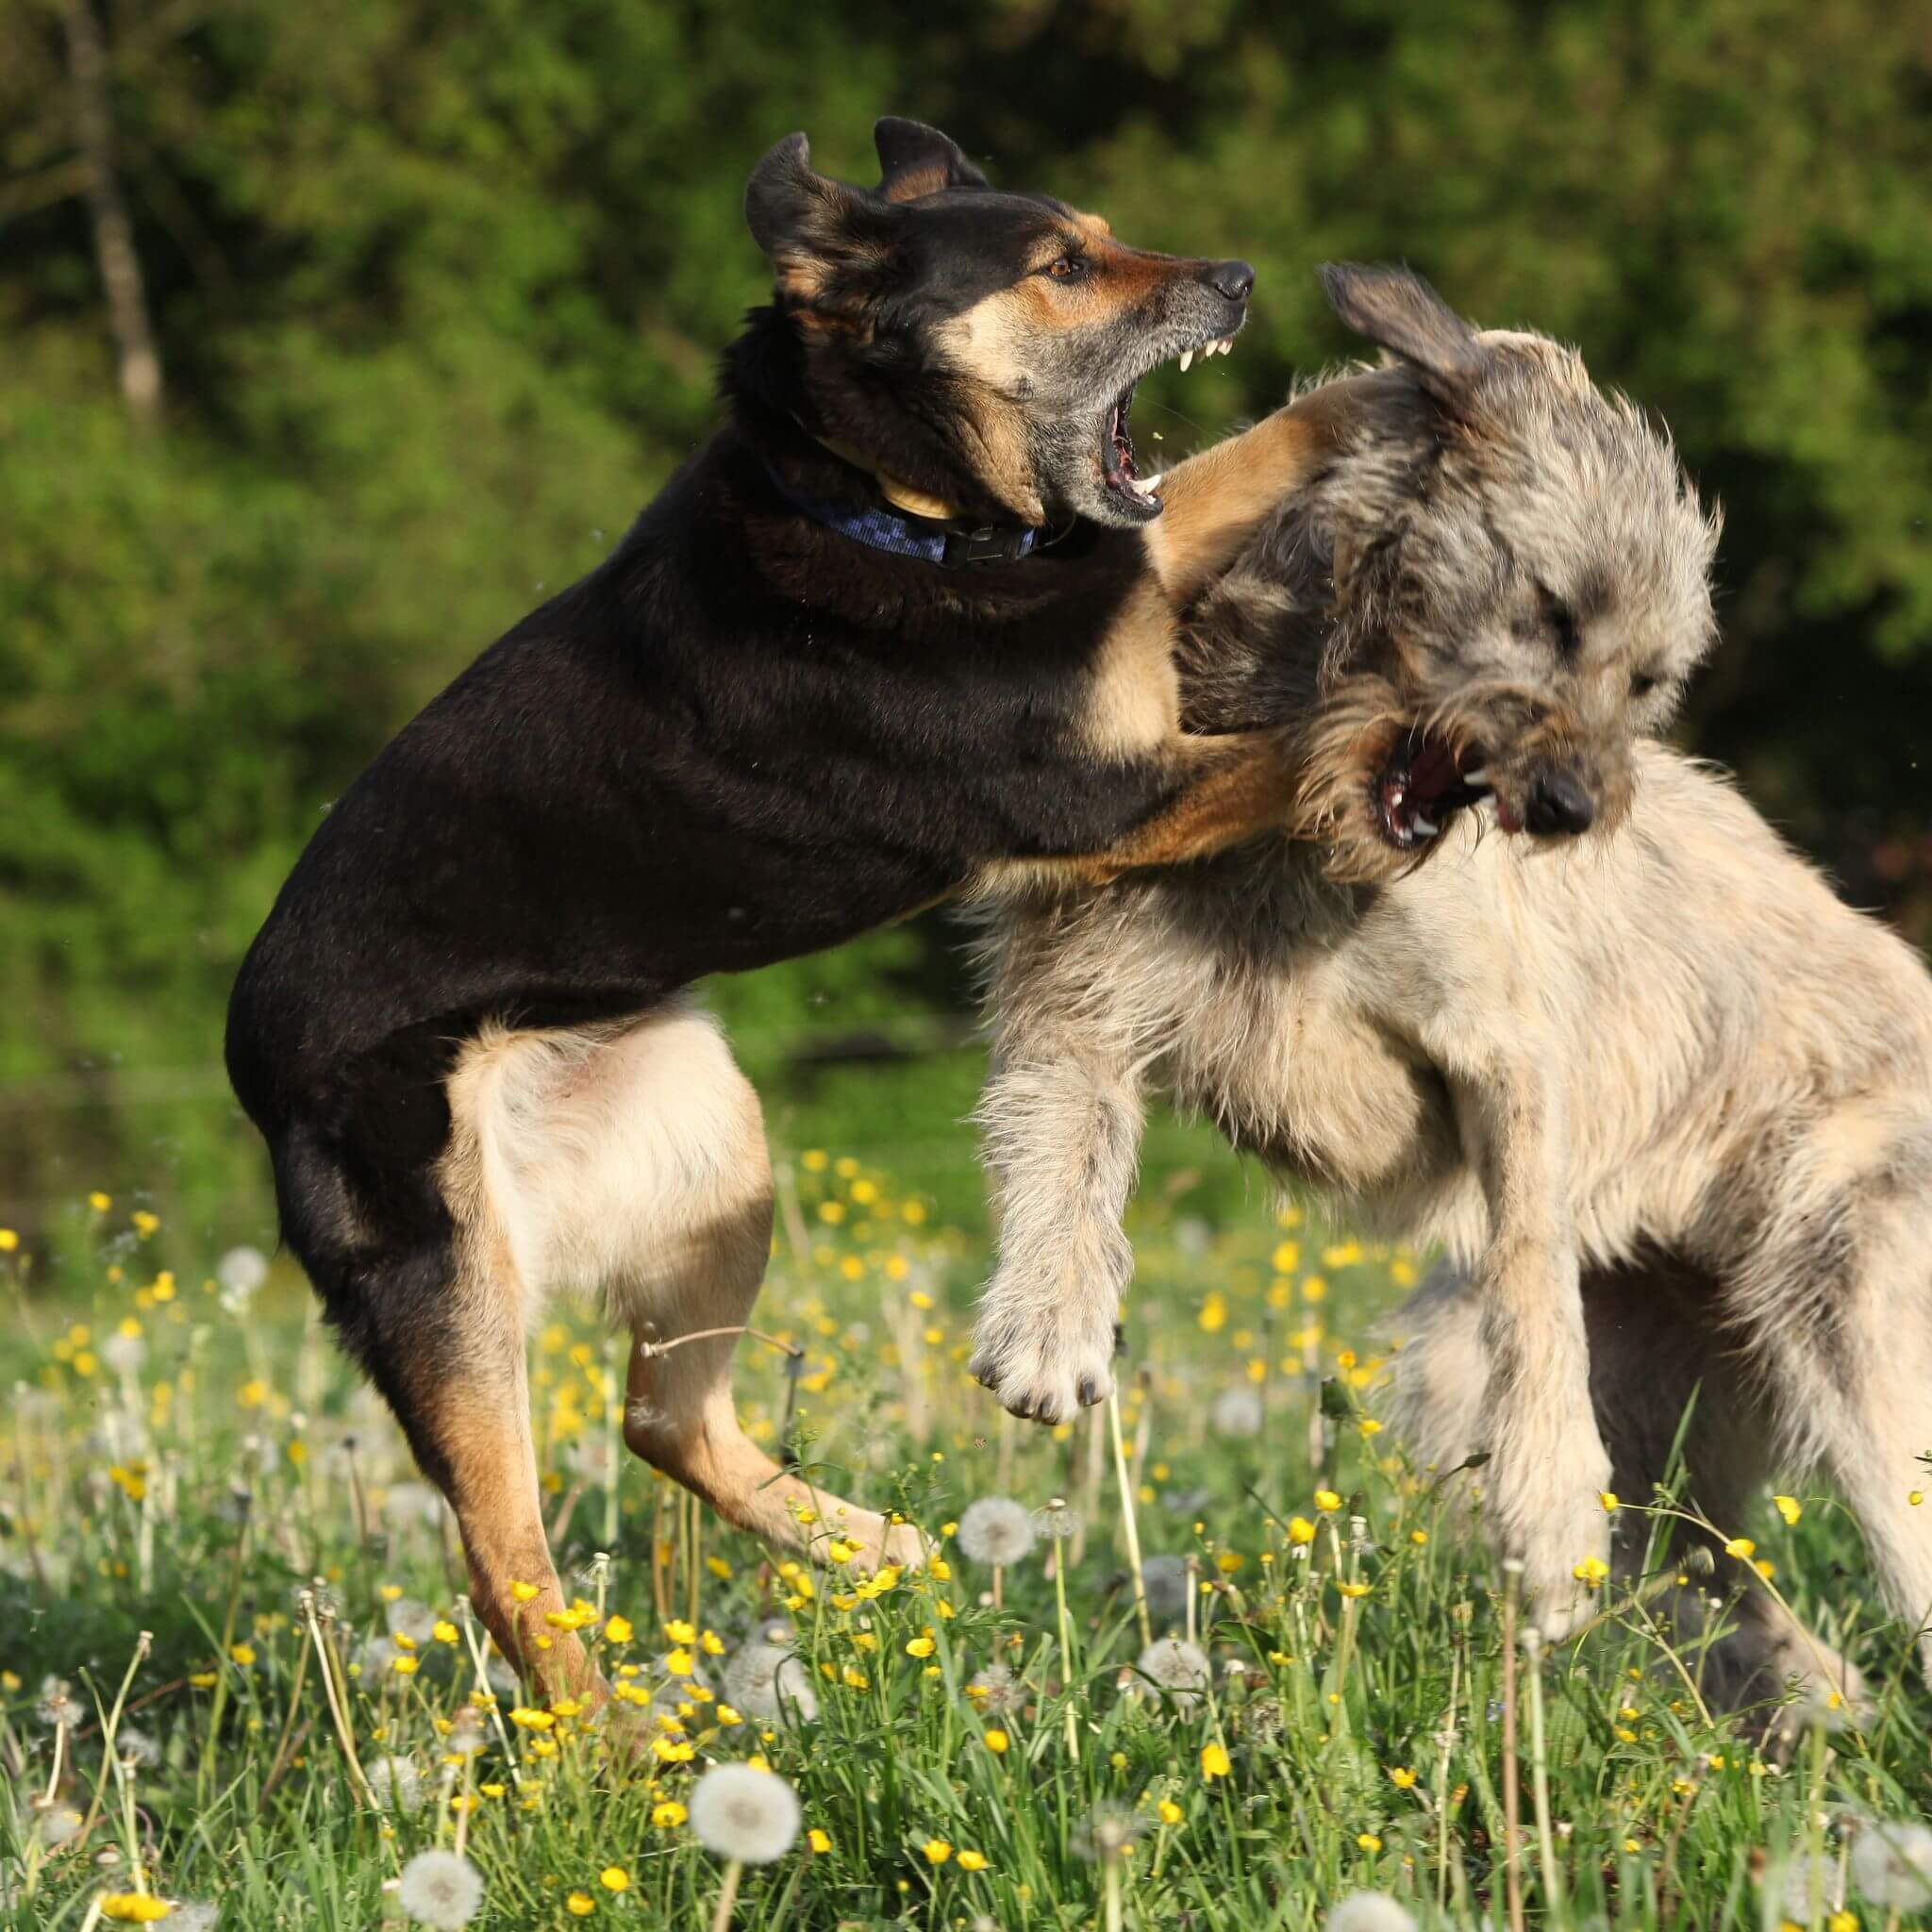 Dogs that are not well socialized or have deficits either in their ability to interpret or communicate with other dogs are more predisposed to aggressive confrontations